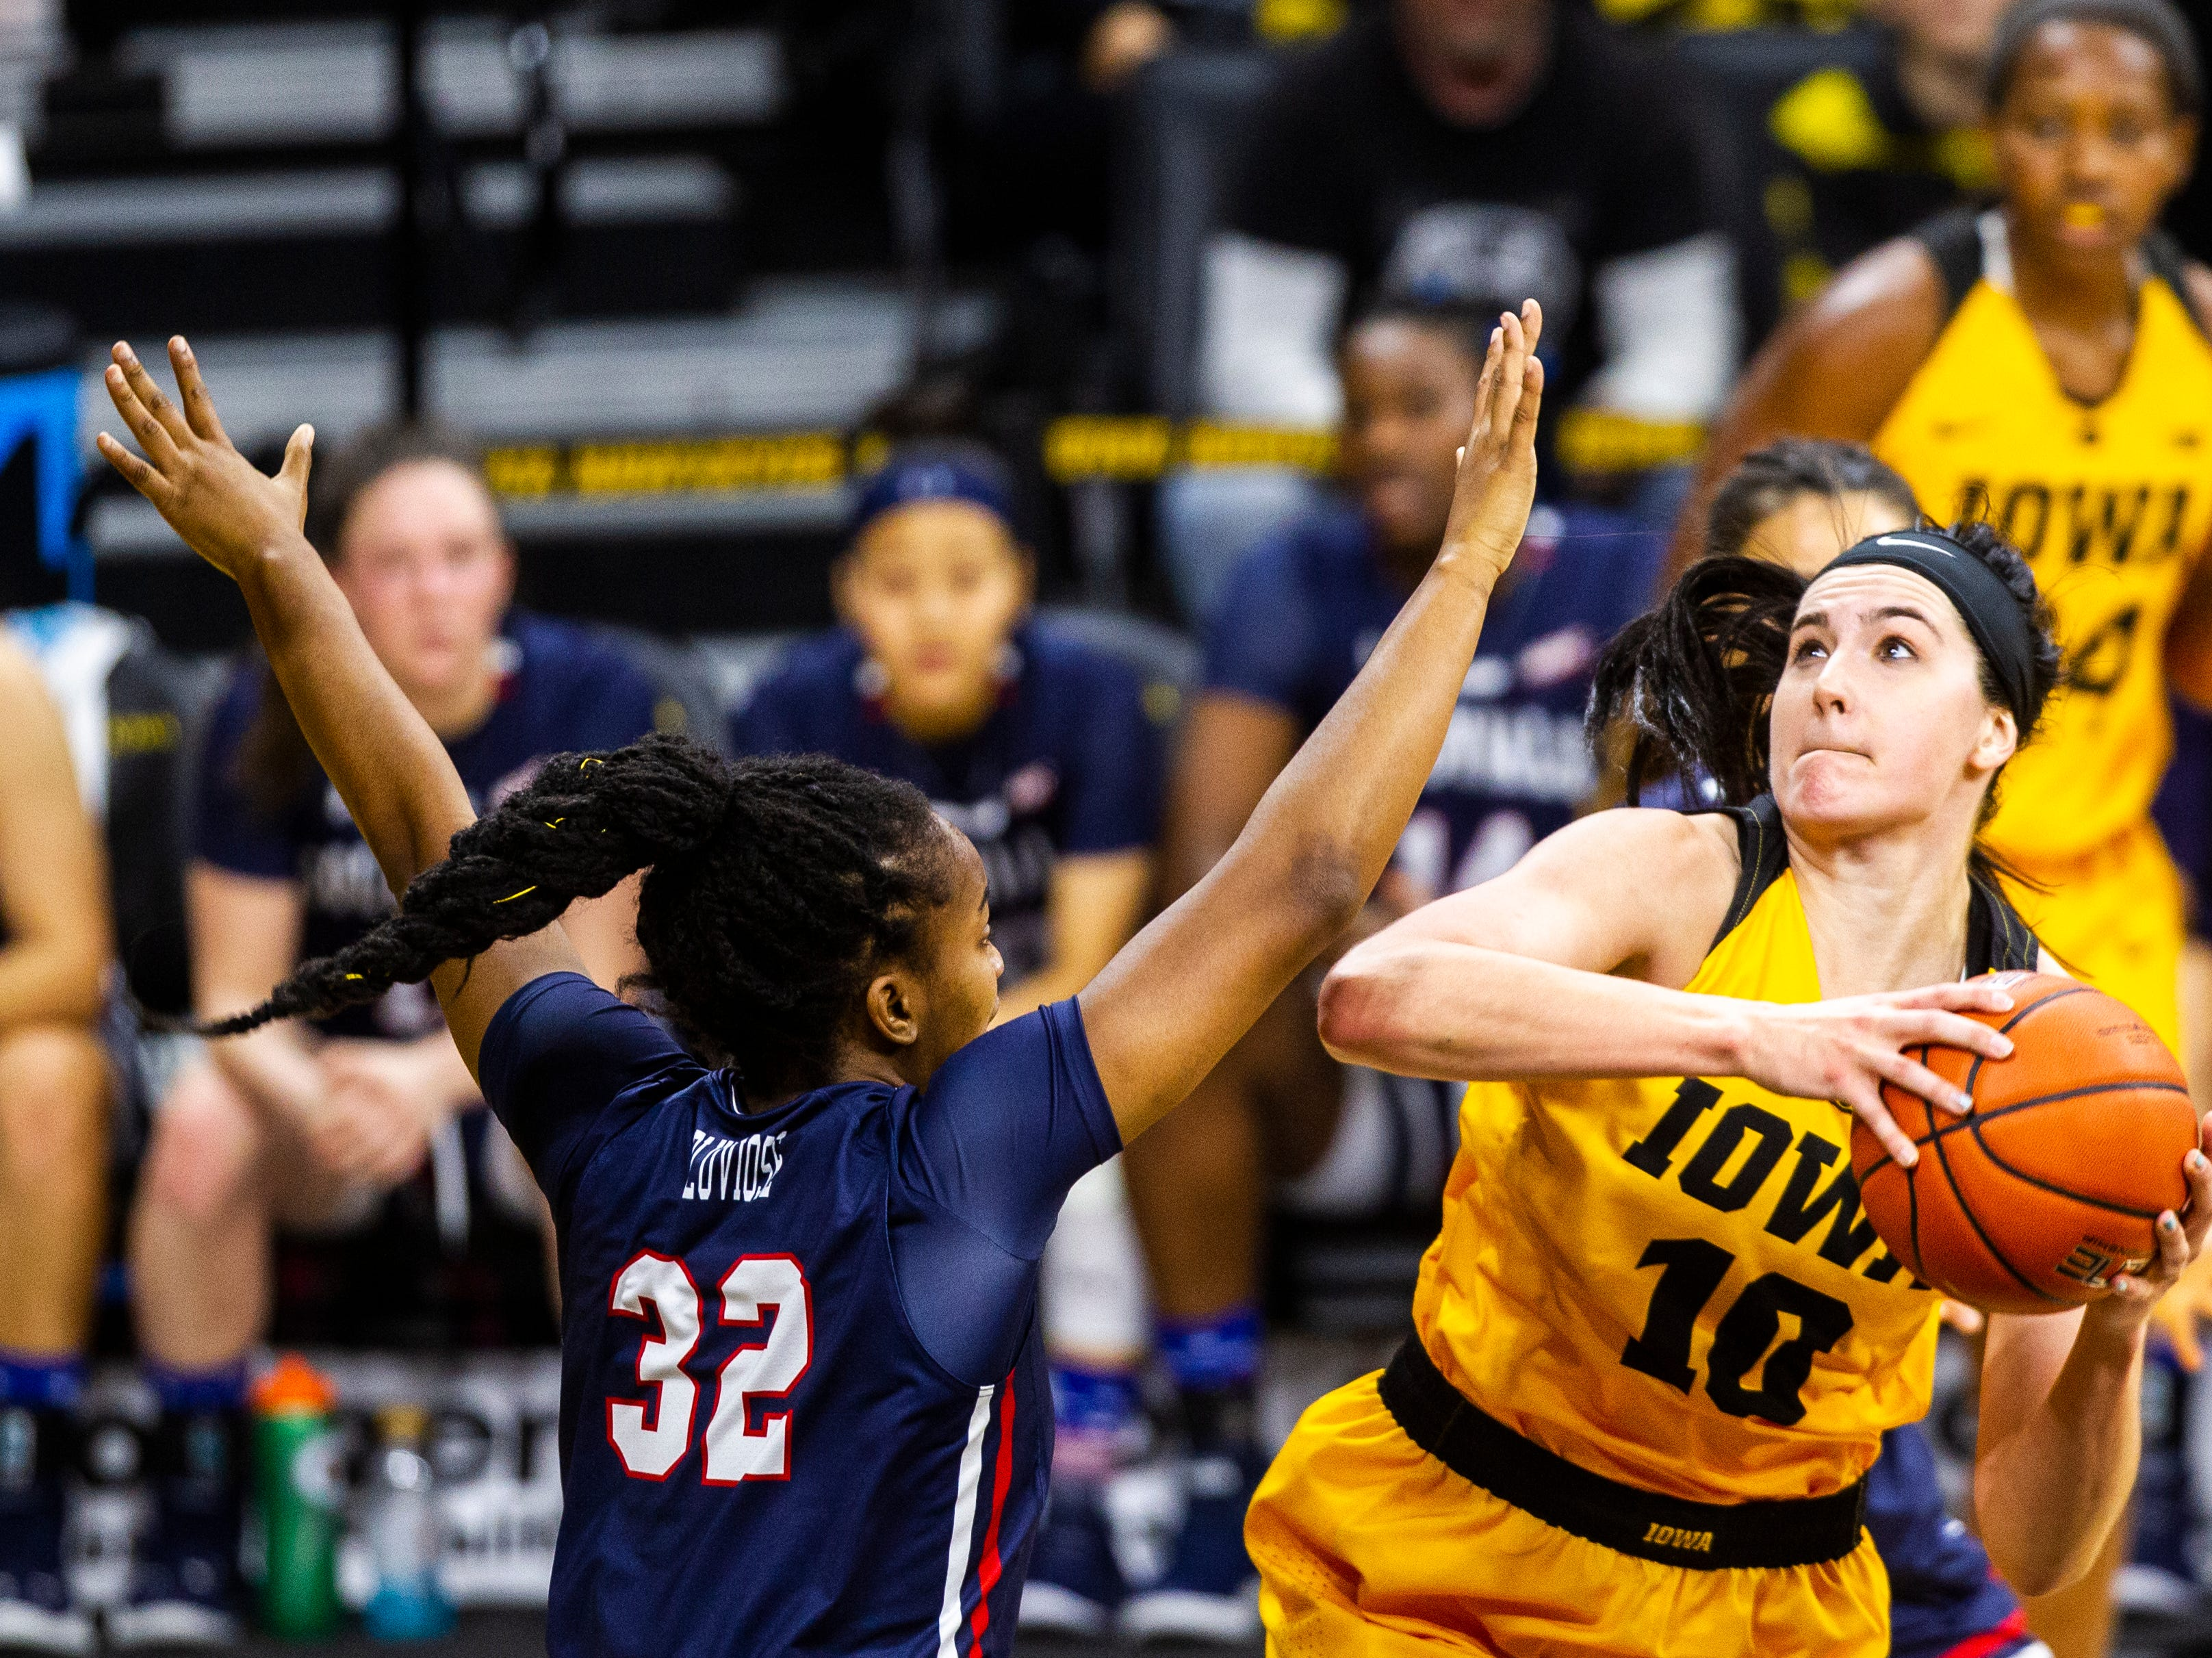 Iowa forward Megan Gustafson (10) attempts a basket past Robert Morris' Nade'ge Pluviose (32) during a NCAA women's basketball game on Sunday, Dec. 2, 2018, at Carver-Hawkeye Arena in Iowa City.